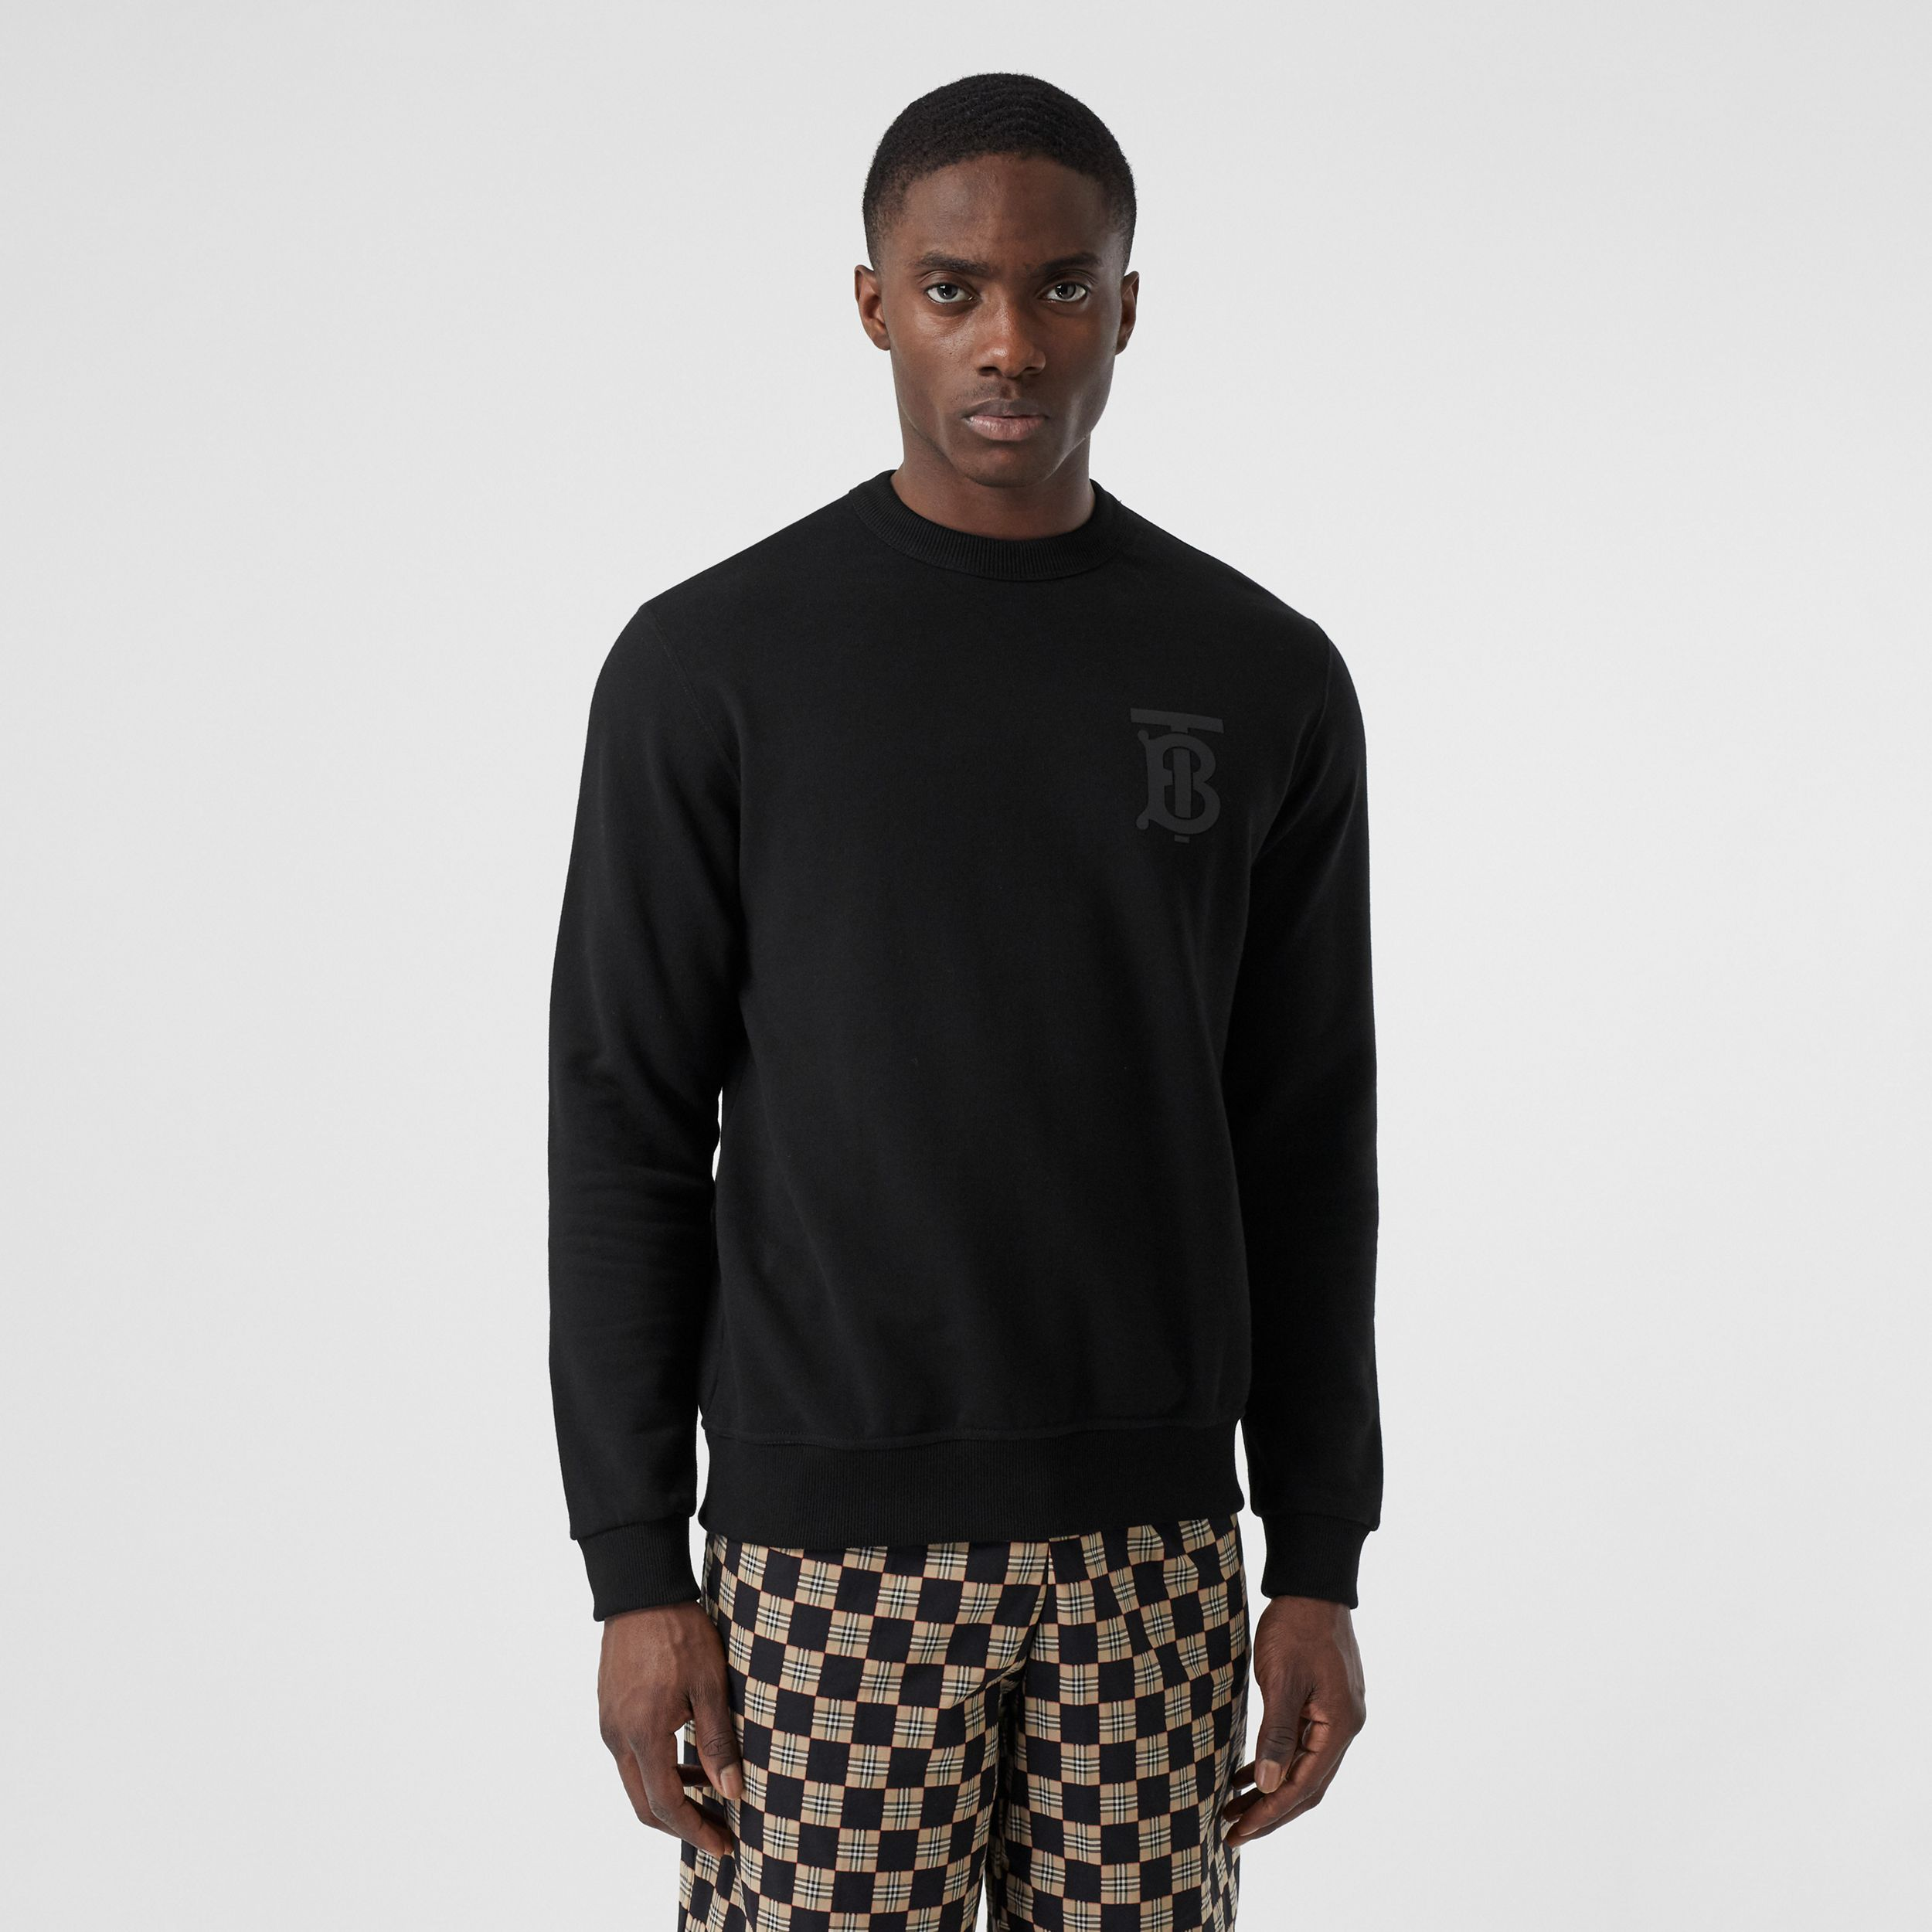 Monogram Motif Cotton Sweatshirt in Black - Men | Burberry United States - 1